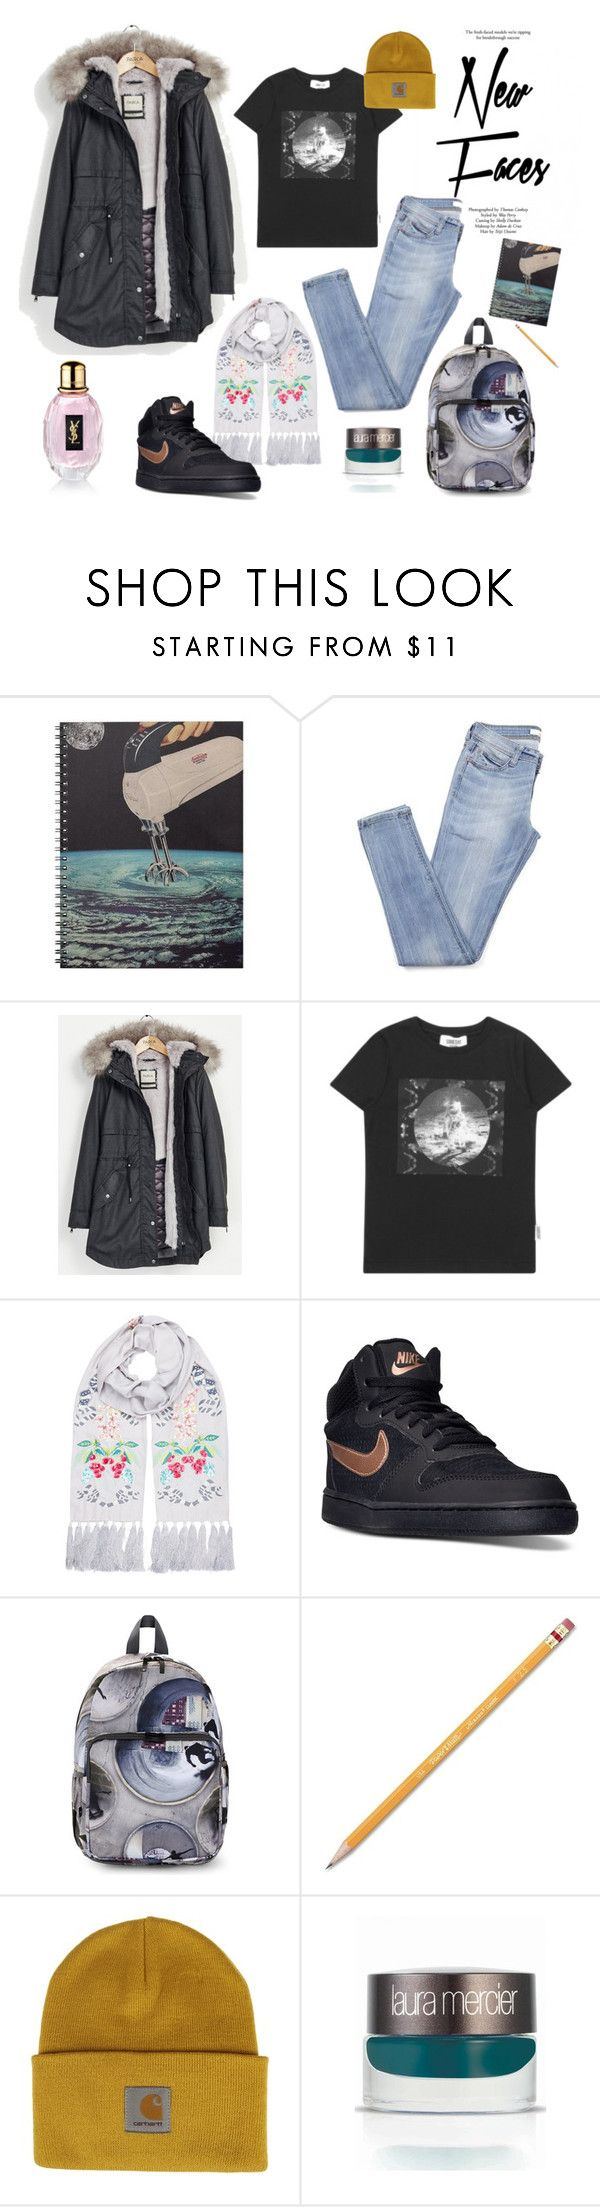 """""""Winter Walk"""" by teopintea ❤ liked on Polyvore featuring Topshop, Parka London, Someday Soon, Temperley London, NIKE, Molo, Paper Mate, Carhartt, Laura Mercier and Yves Saint Laurent"""